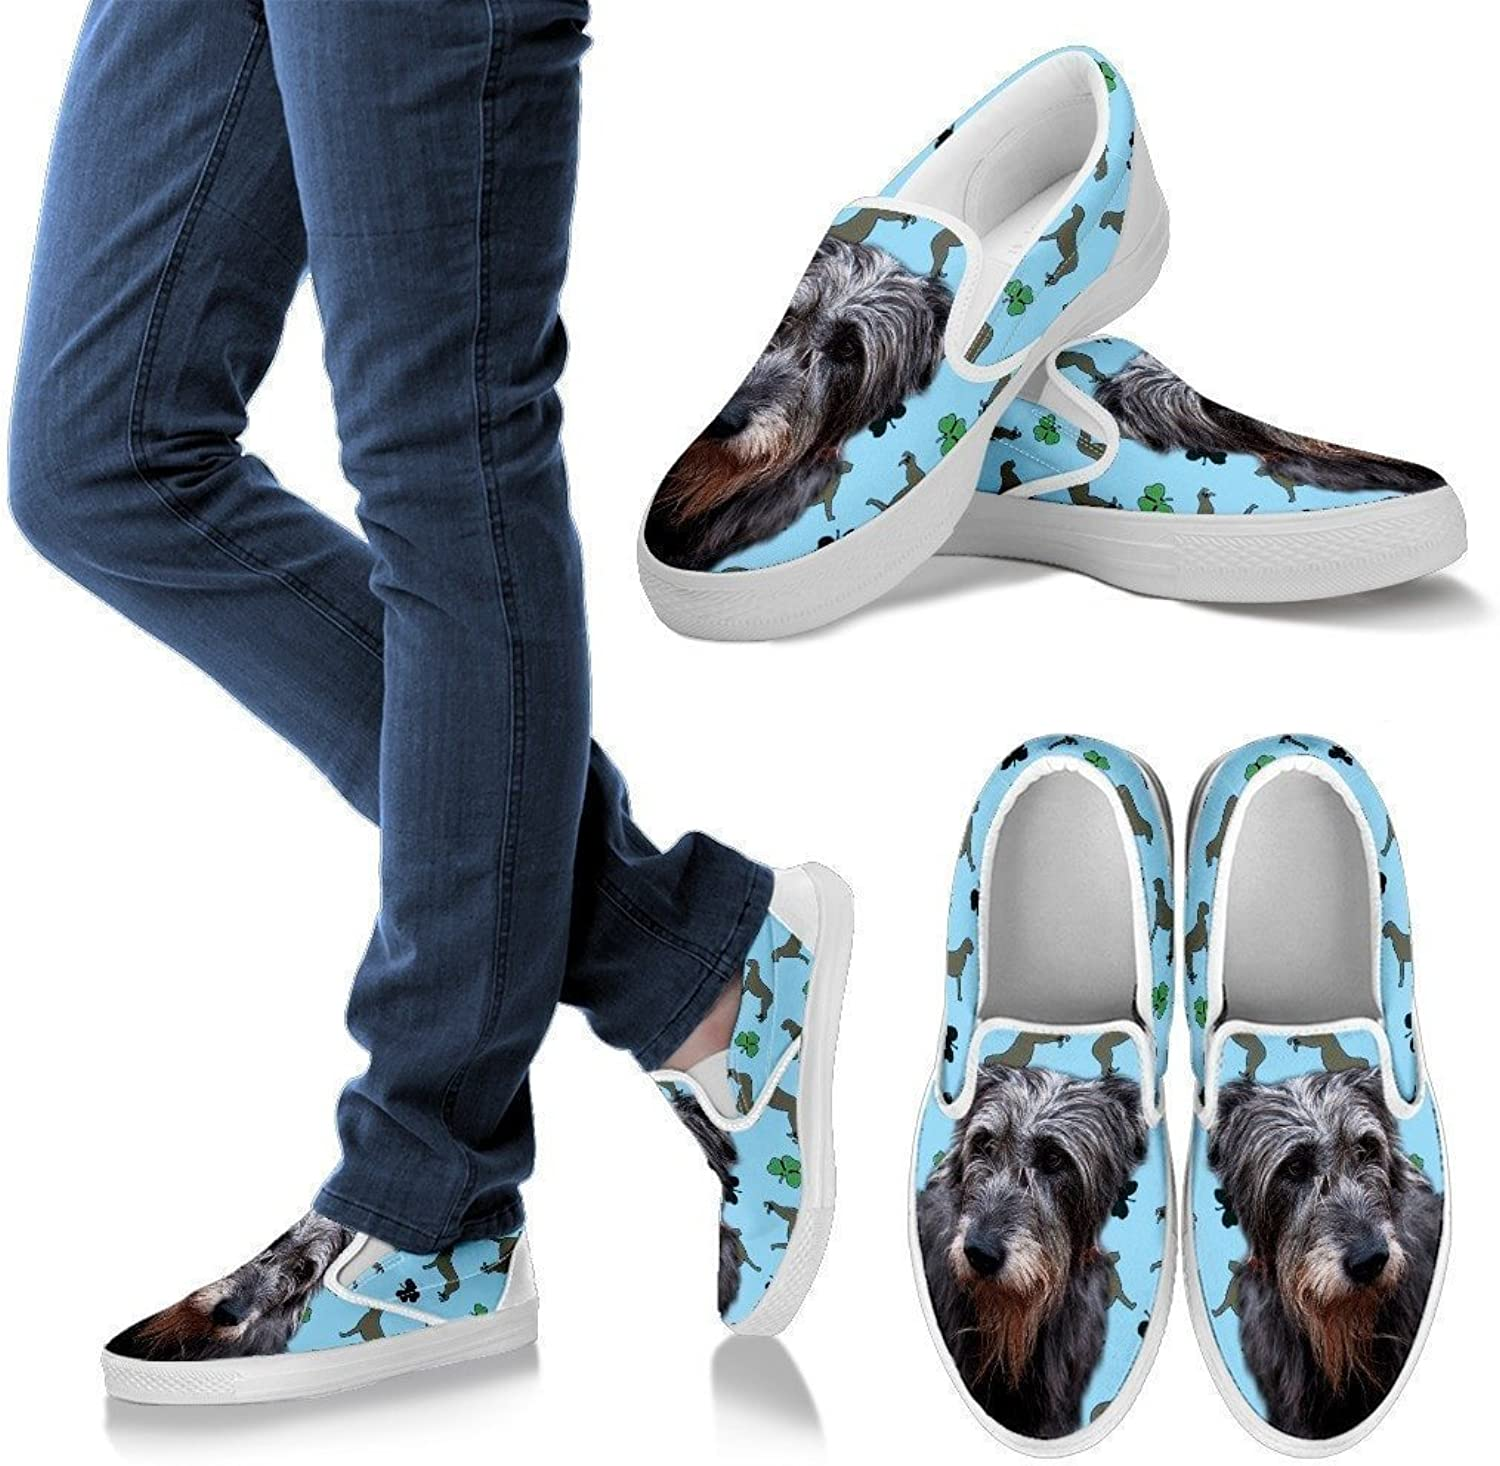 Pet By You PetByYou Irish Wolfhound 3D Printed Slip Ons, Light Weight Slip-Ons for Women, Canvas Priny Walking shoes, Womens Slip Ons - US Sizes 6-12.